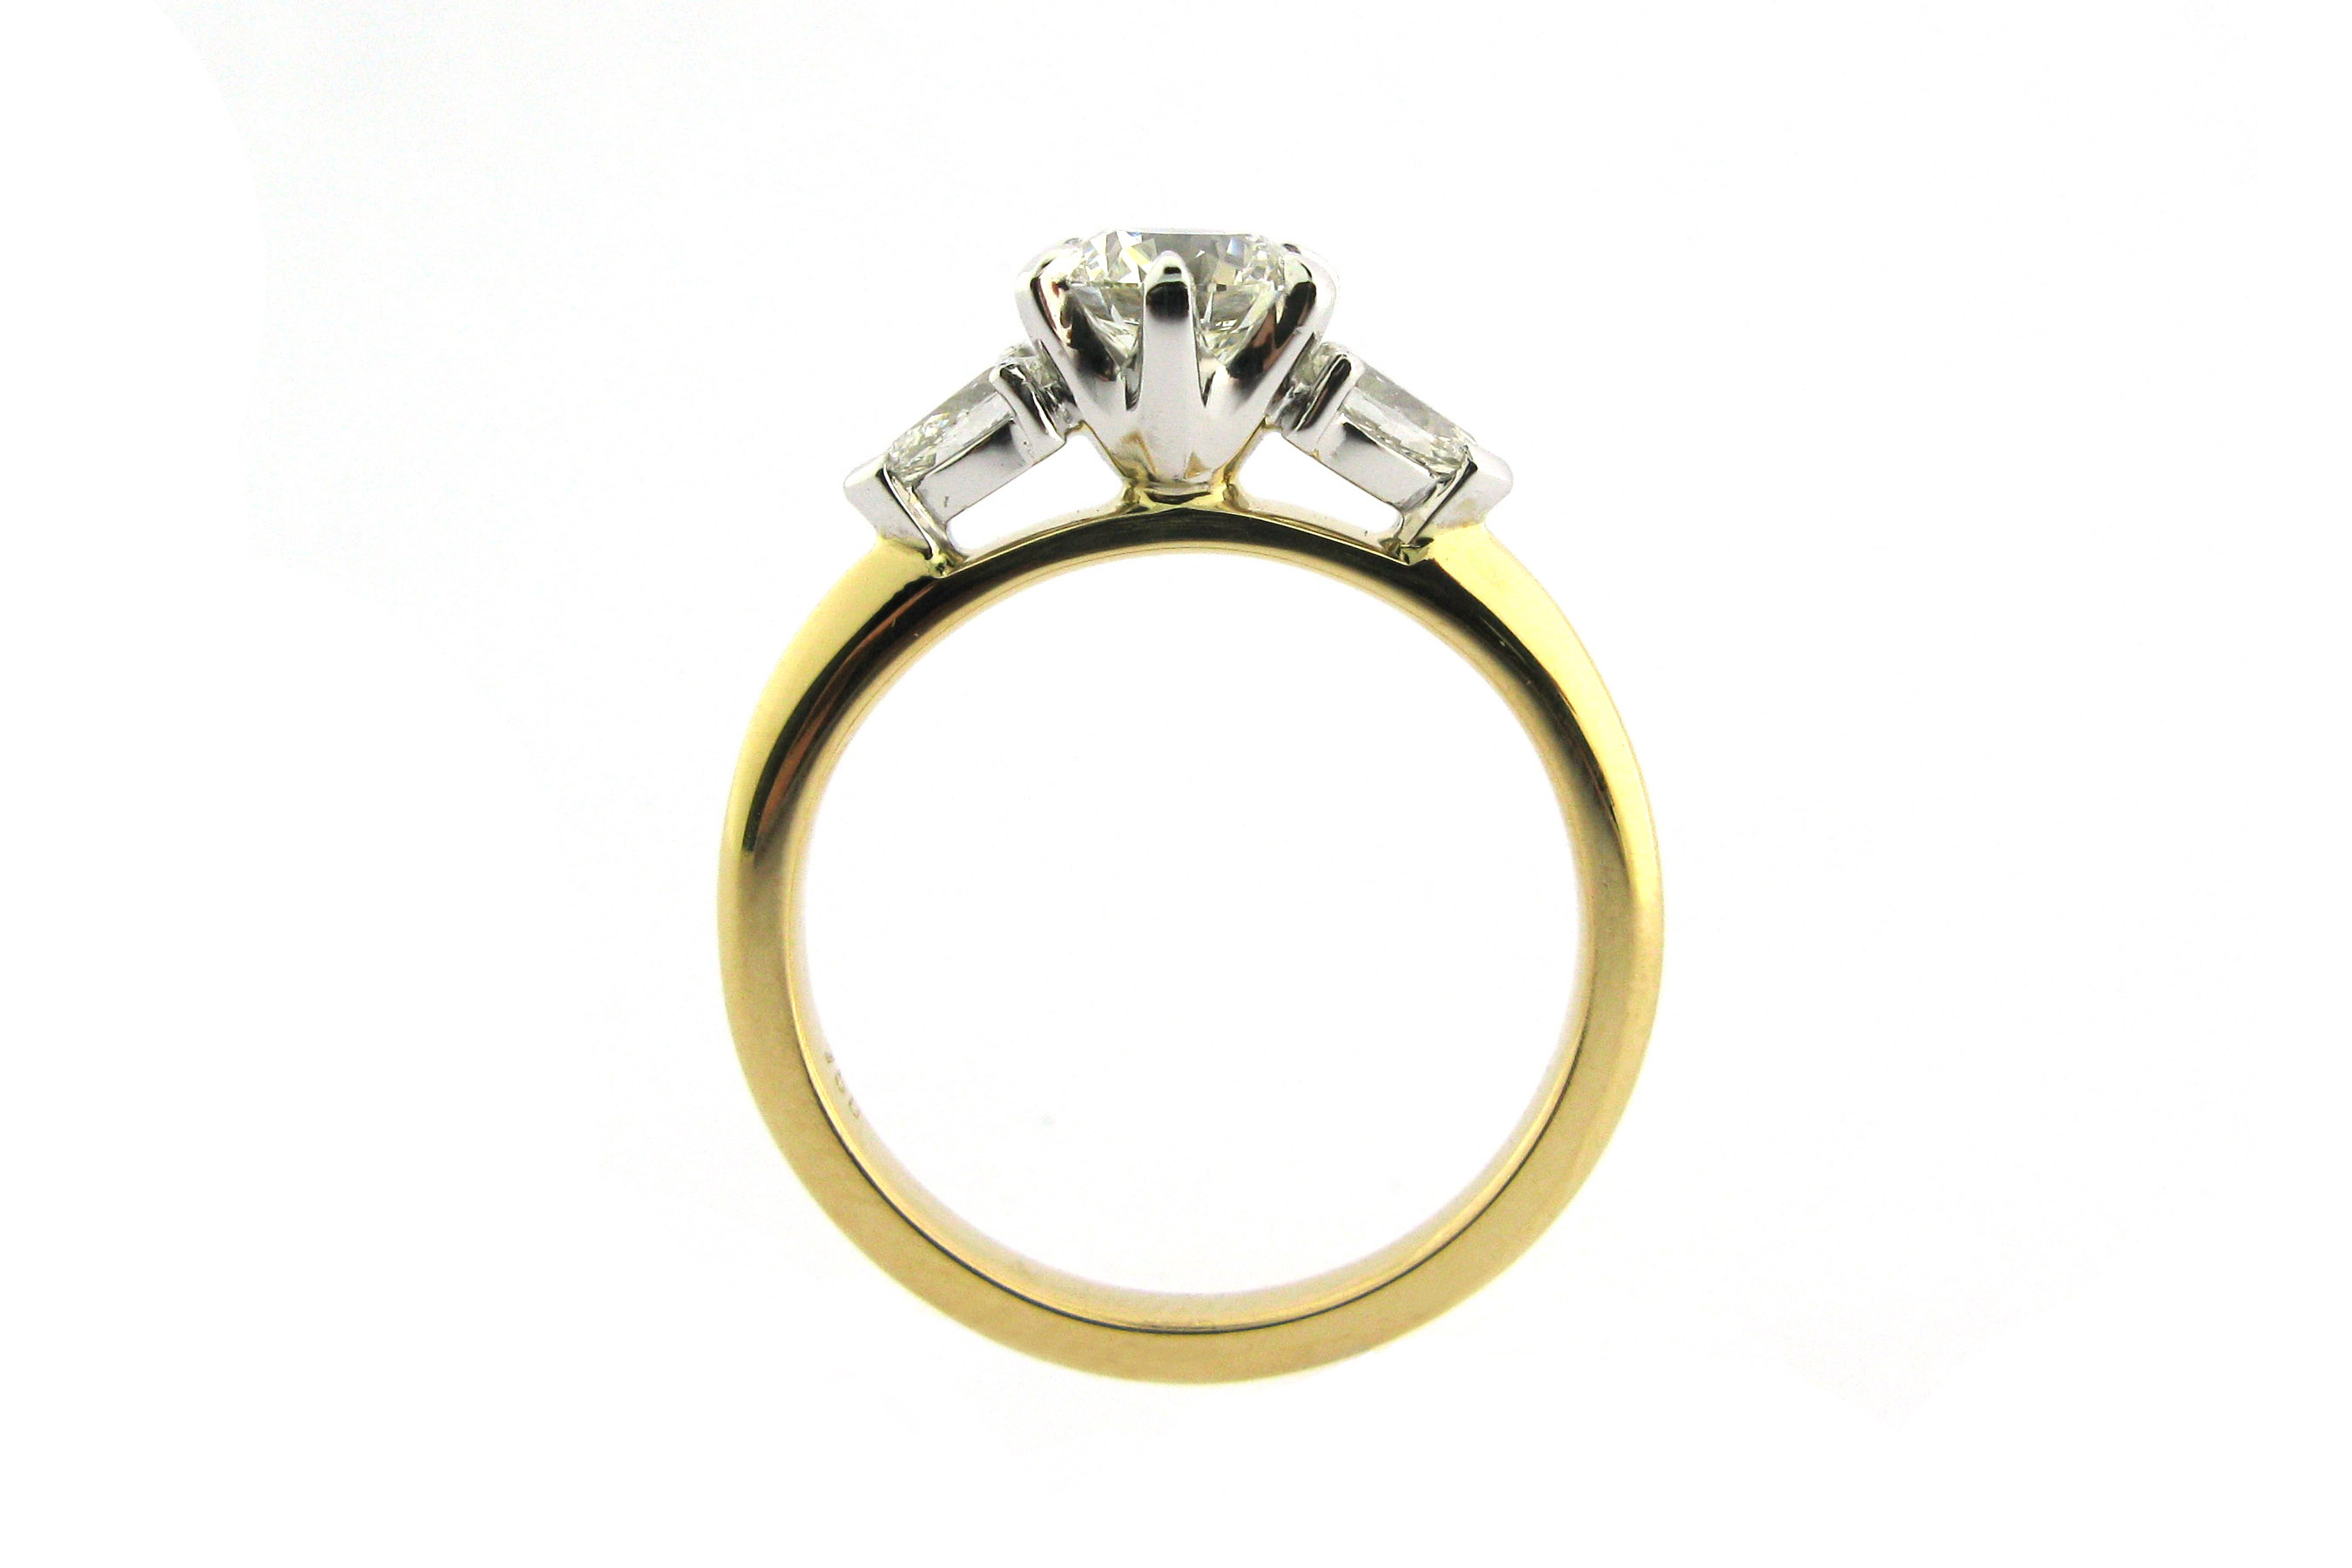 Round Brilliant Cut Diamond Ring With Pear Shaped Side With Round Brilliant Engagement Rings With Pear Shaped Side Stones (Gallery 20 of 25)